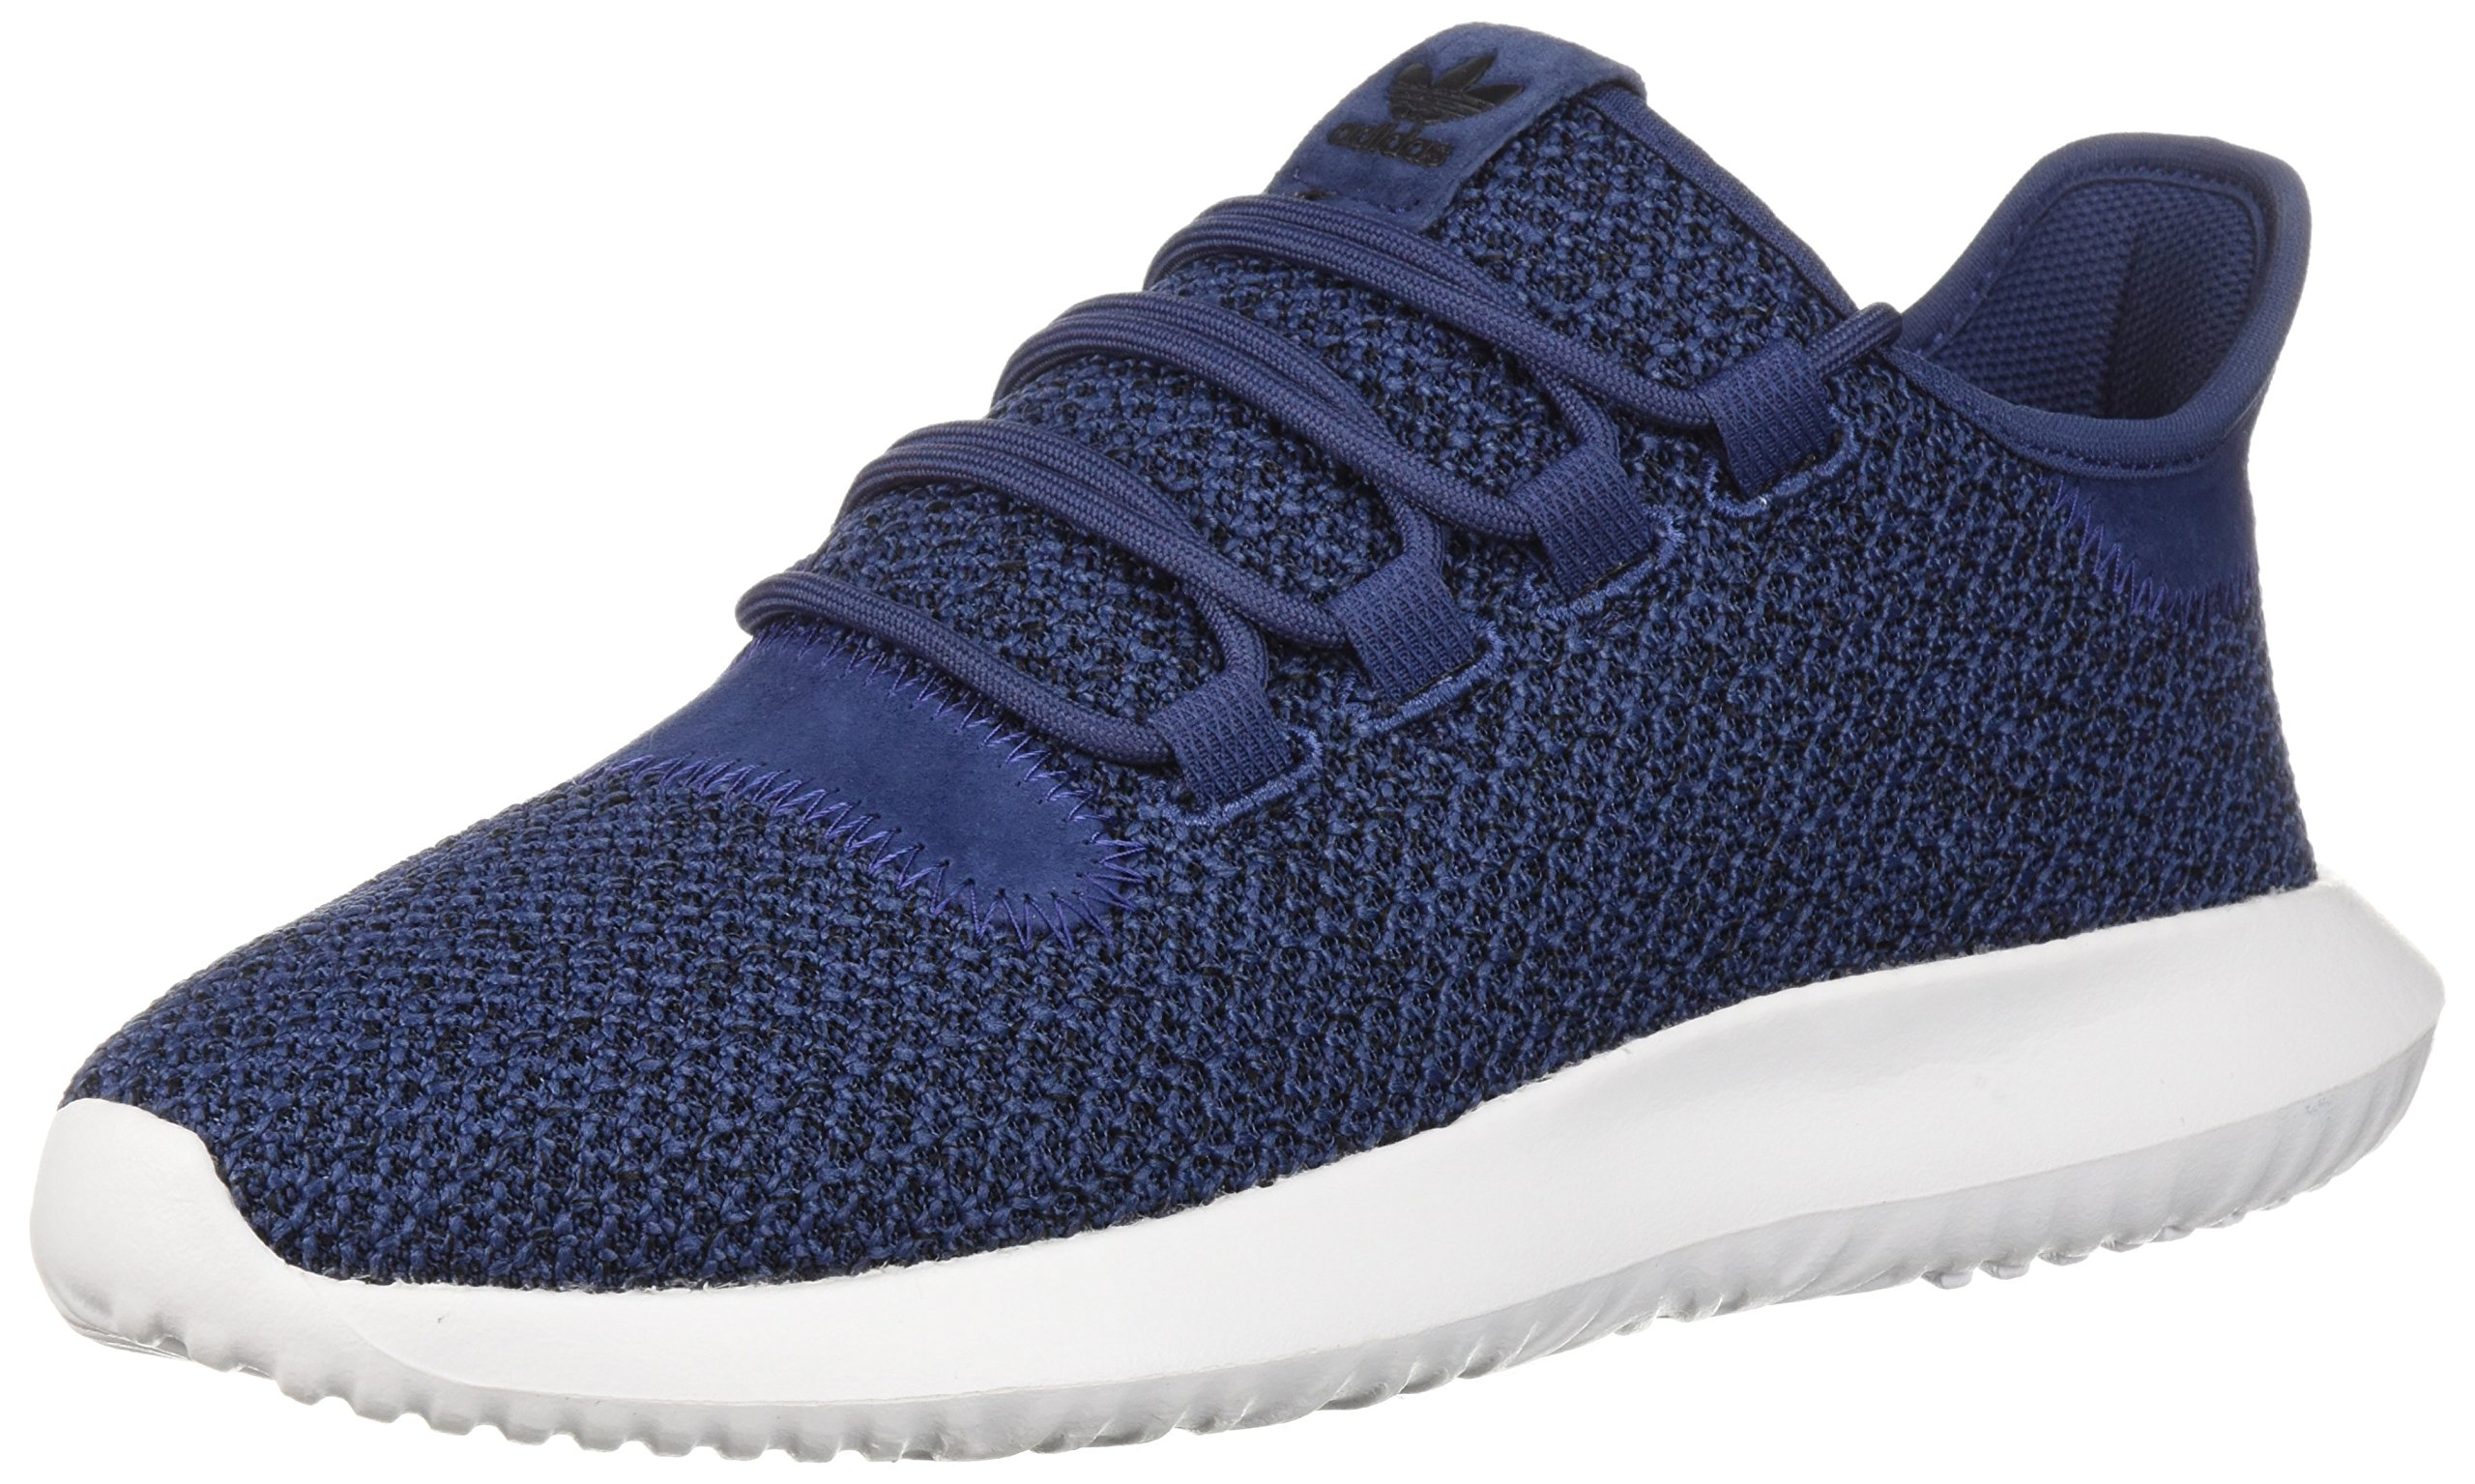 adidas Originals Women's Tubular Shadow W, Noble Indigo/Noble Indigo/White, 5 M US